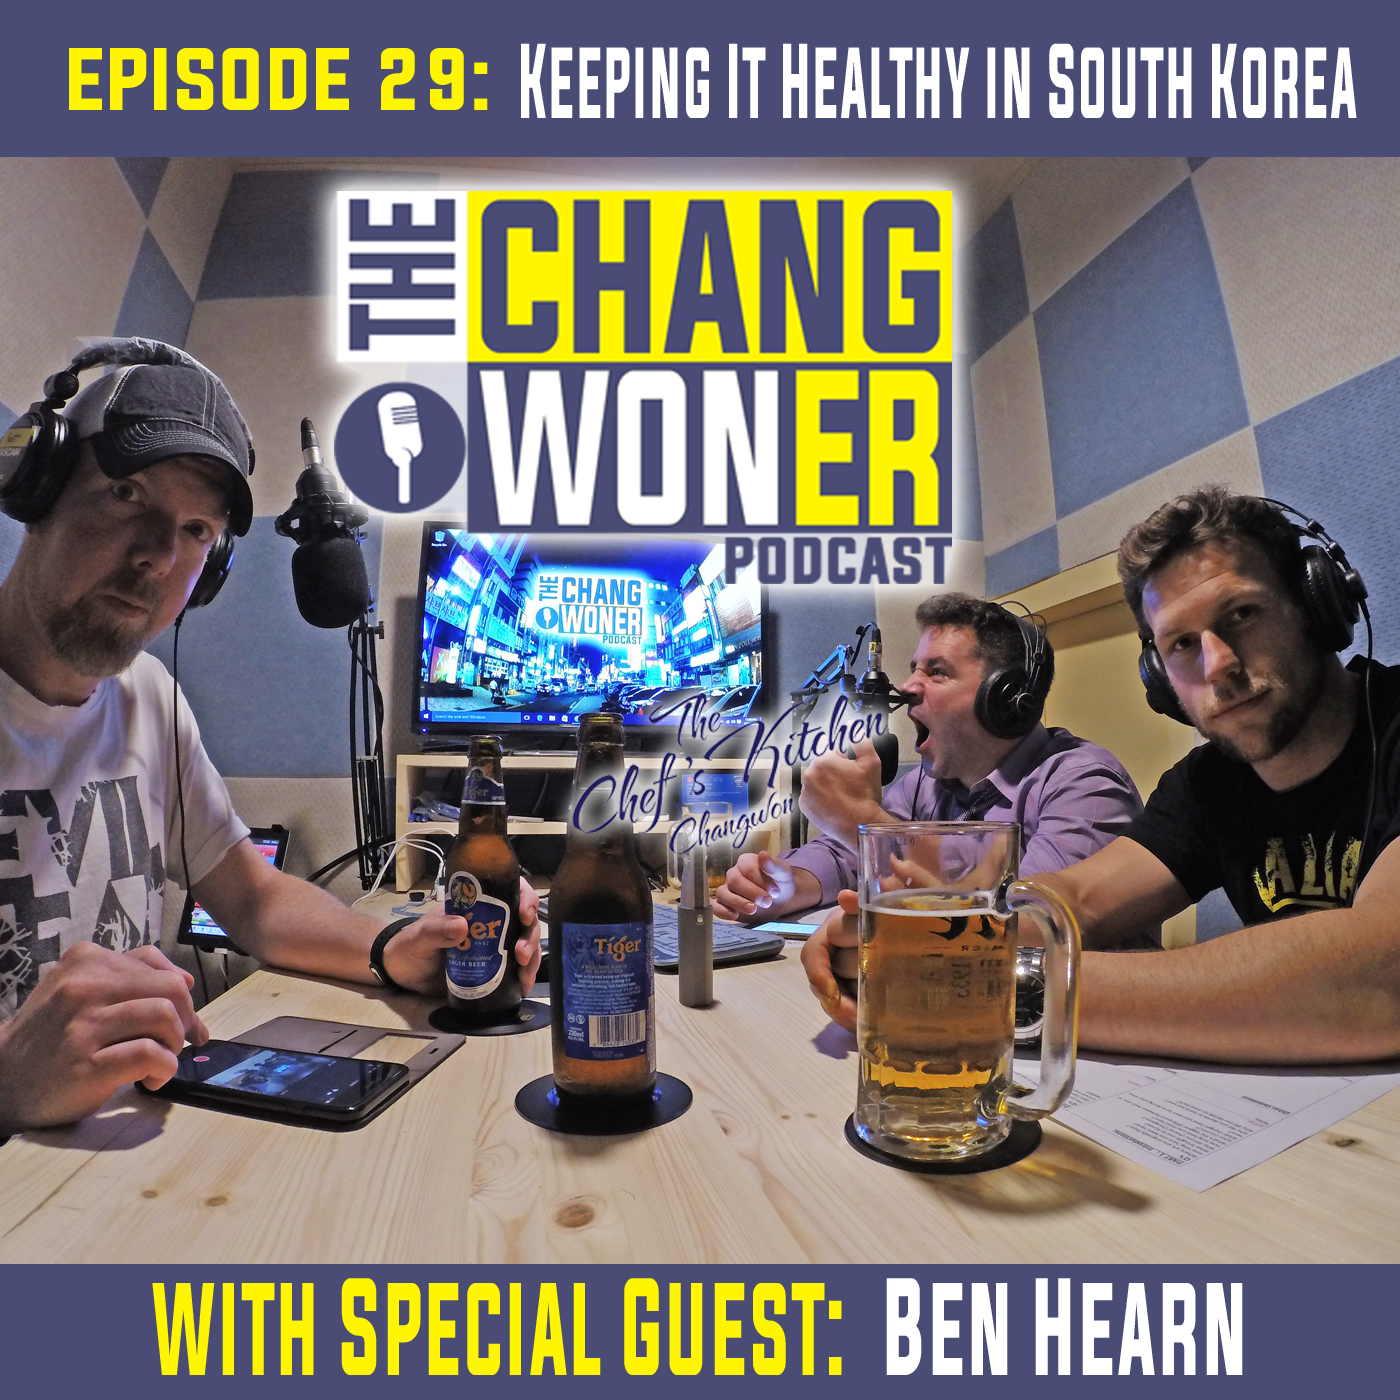 Artwork for Being Diabetic and Keeping It Healthy in South Korea. -guest Ben Hearn (Ep 29)